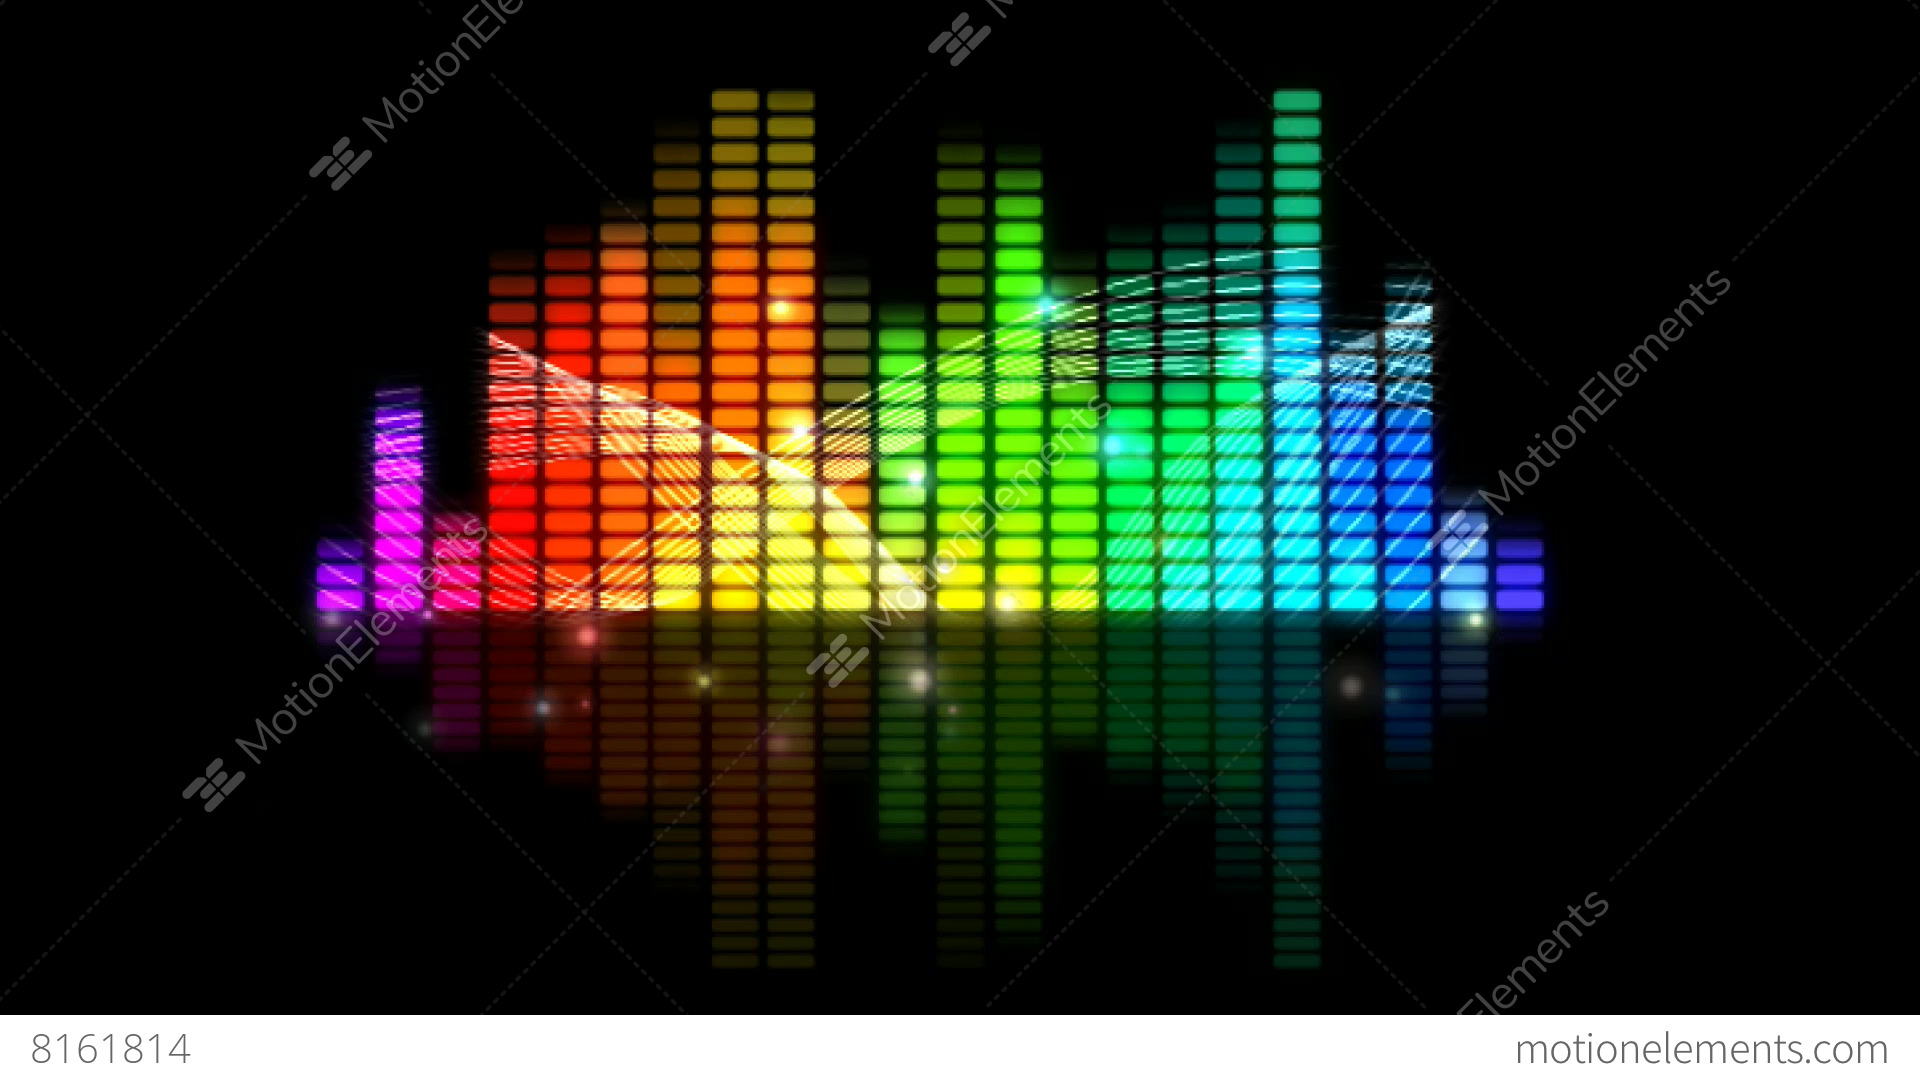 me8161814-music-background-graphic-equaliser-motion-visual-effect-hd-a0005.jpg